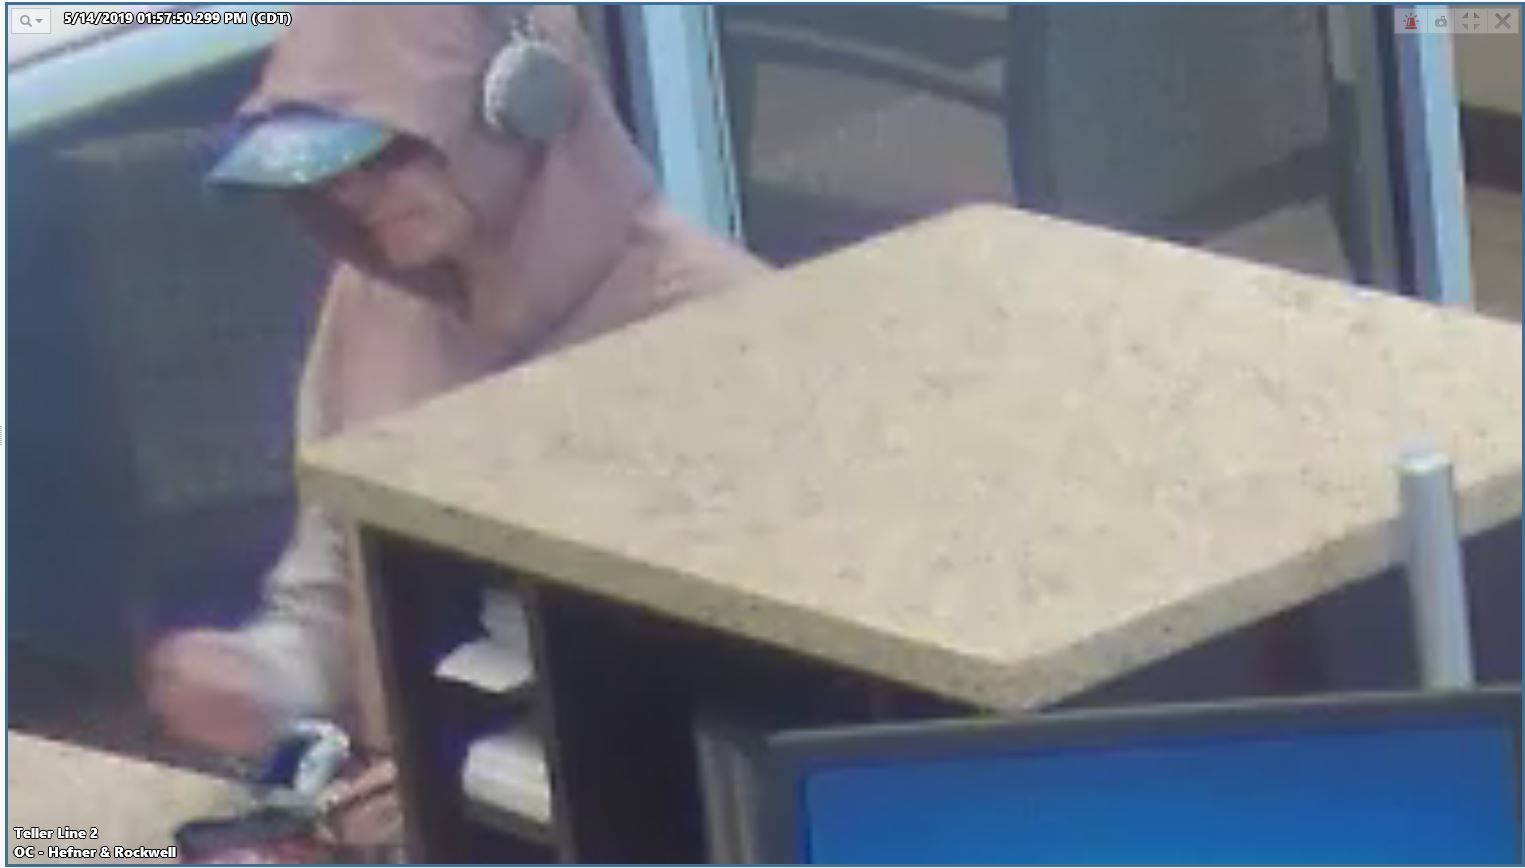 FBI investigating second bank robbery in OKC metro